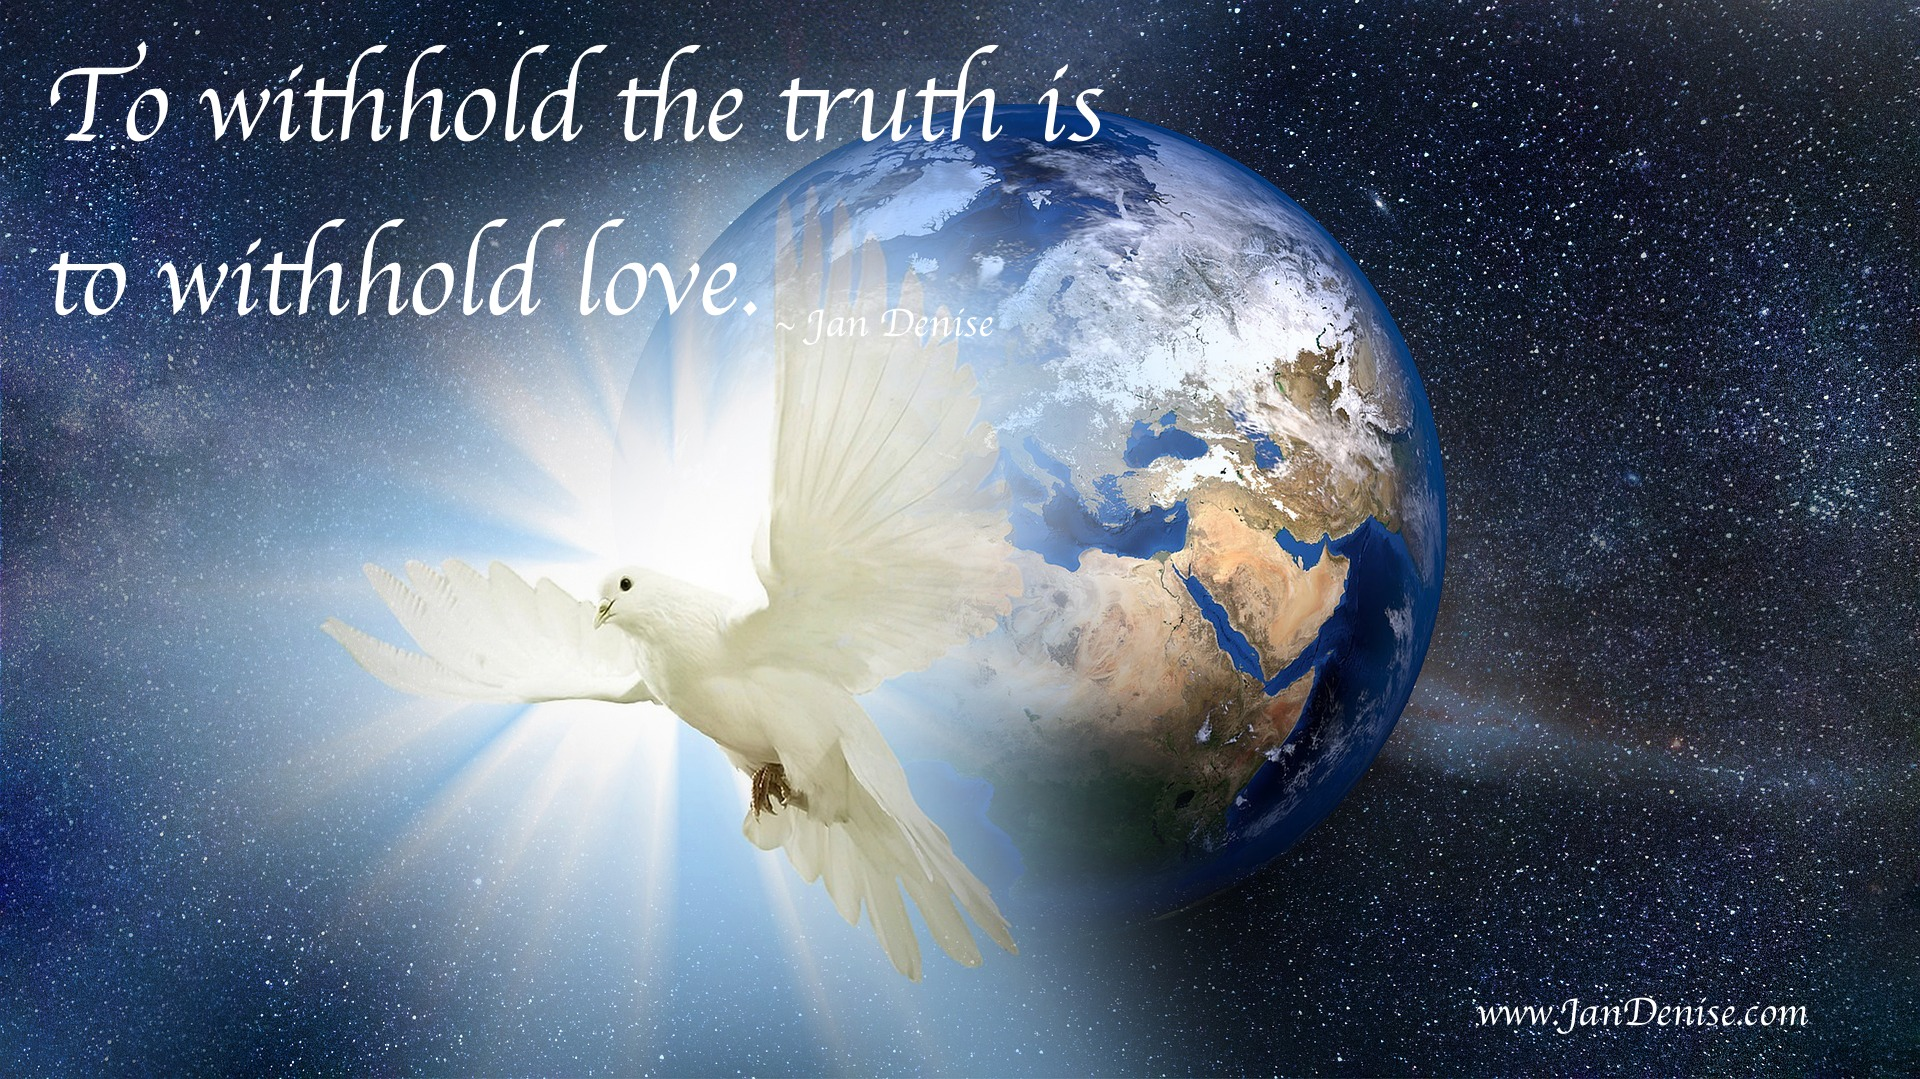 To withhold the truth is to withhold love …